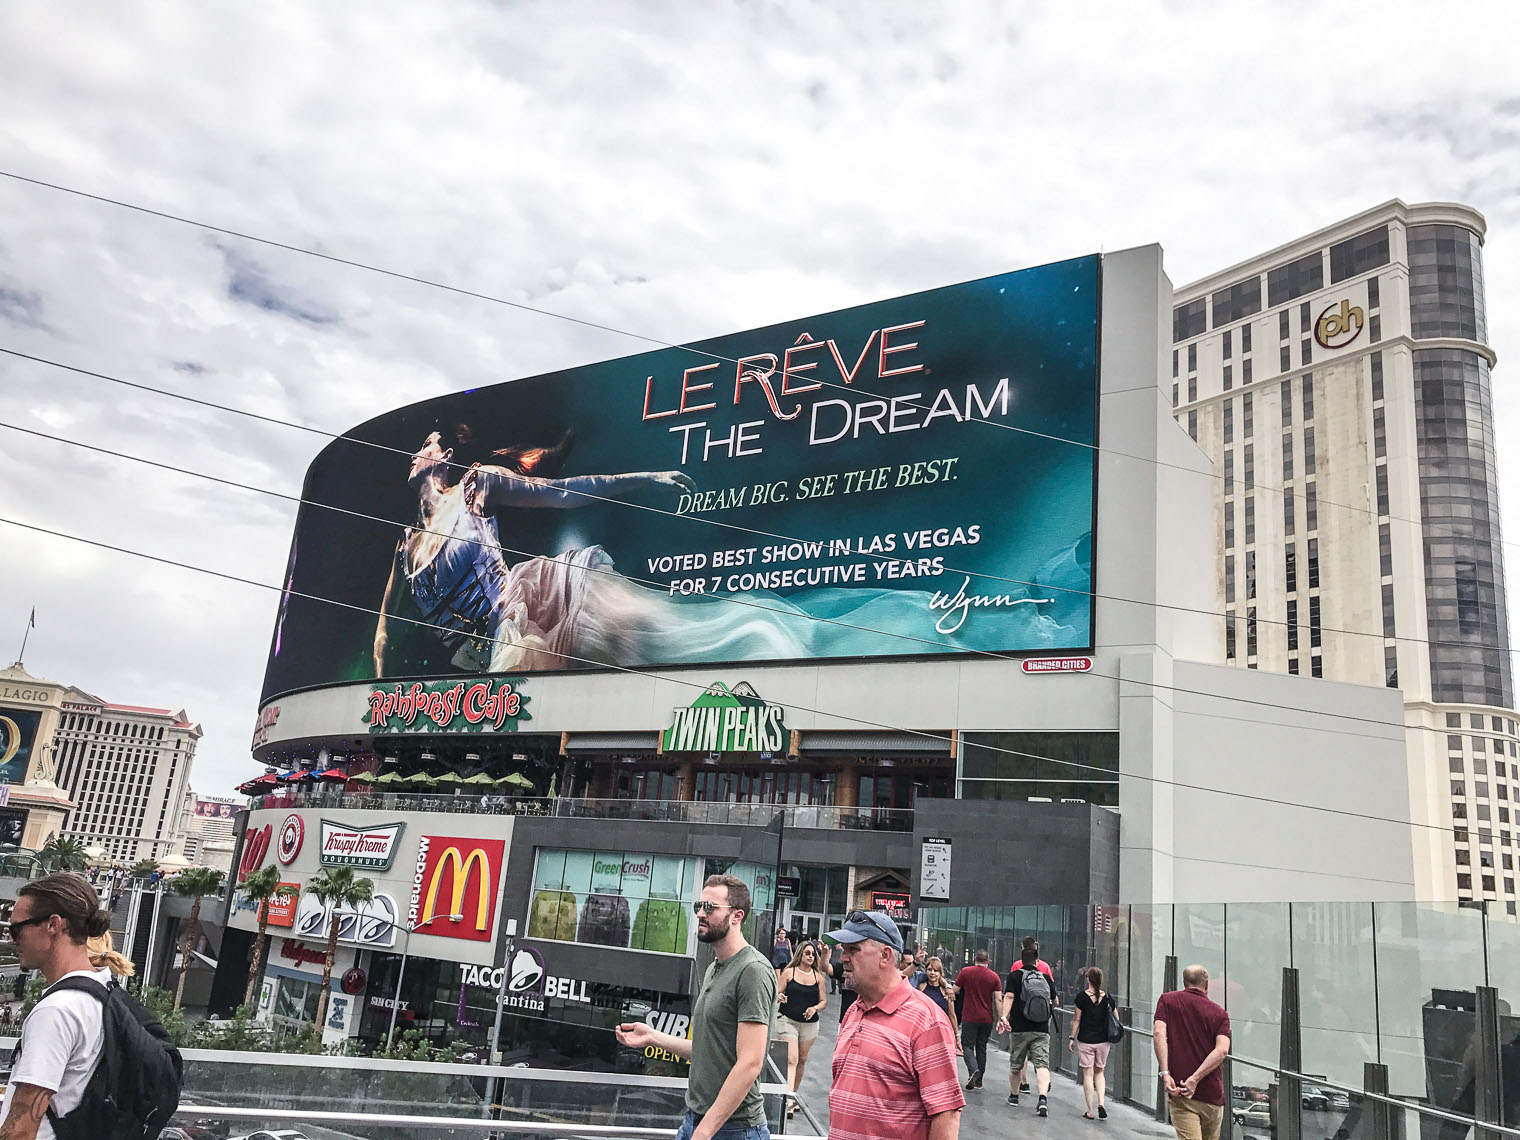 Big Moving bill board Advertising for Le Reve the show At the Wynn Las Vegas